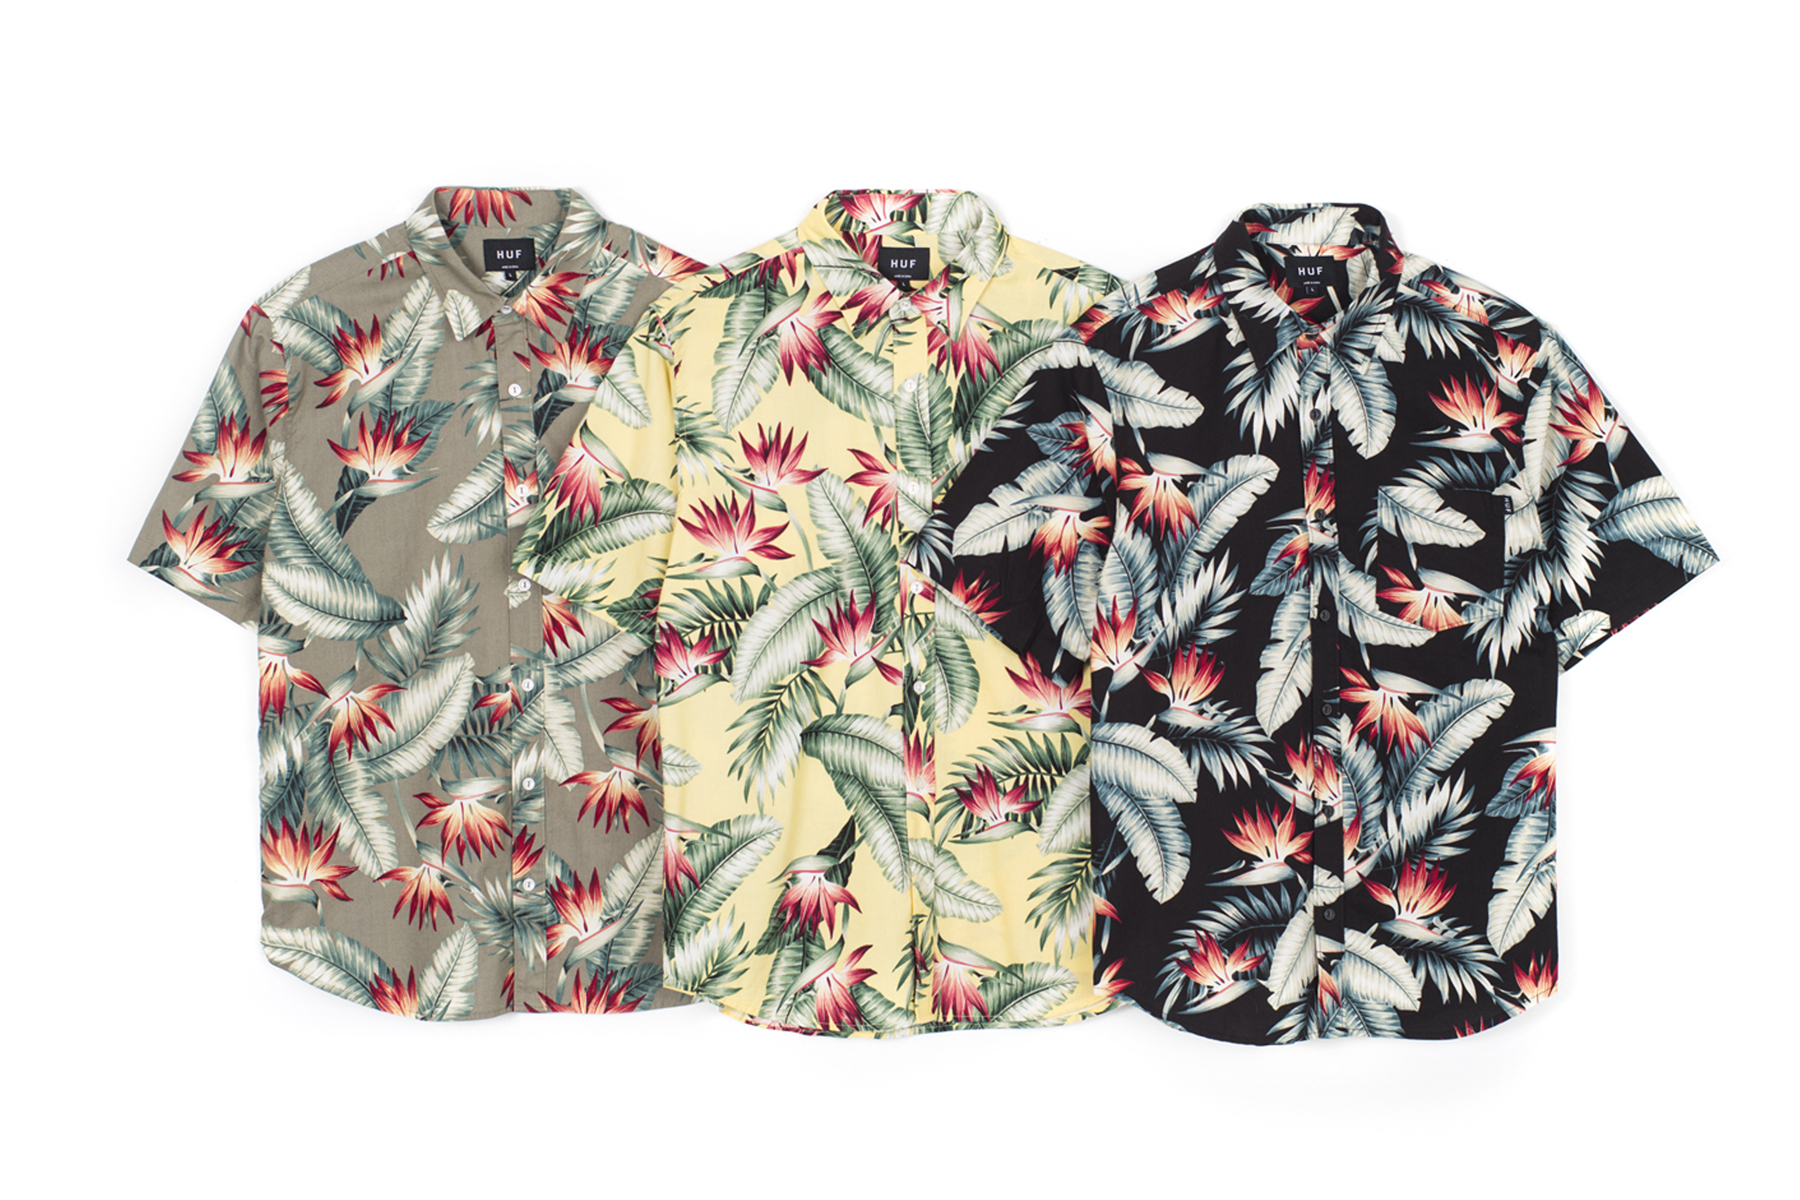 HUF 2014 Spring/Summer Apparel Collection